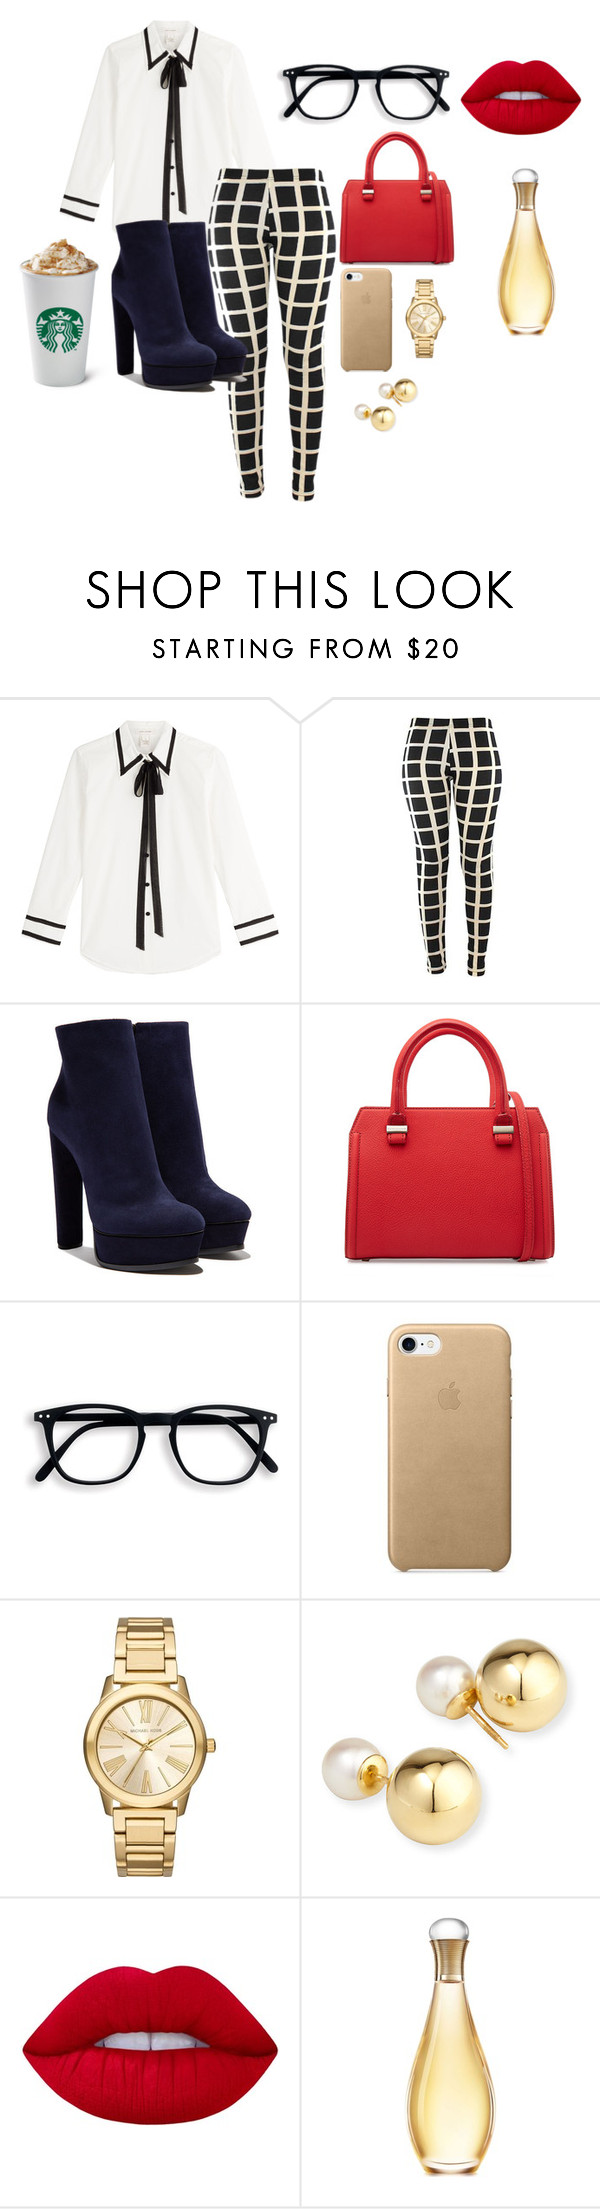 """""""ofichic"""" by anabelvalentina on Polyvore featuring moda, Marc Jacobs, Casadei, Victoria Beckham, Michael Kors, Yoko London, Lime Crime y Christian Dior"""